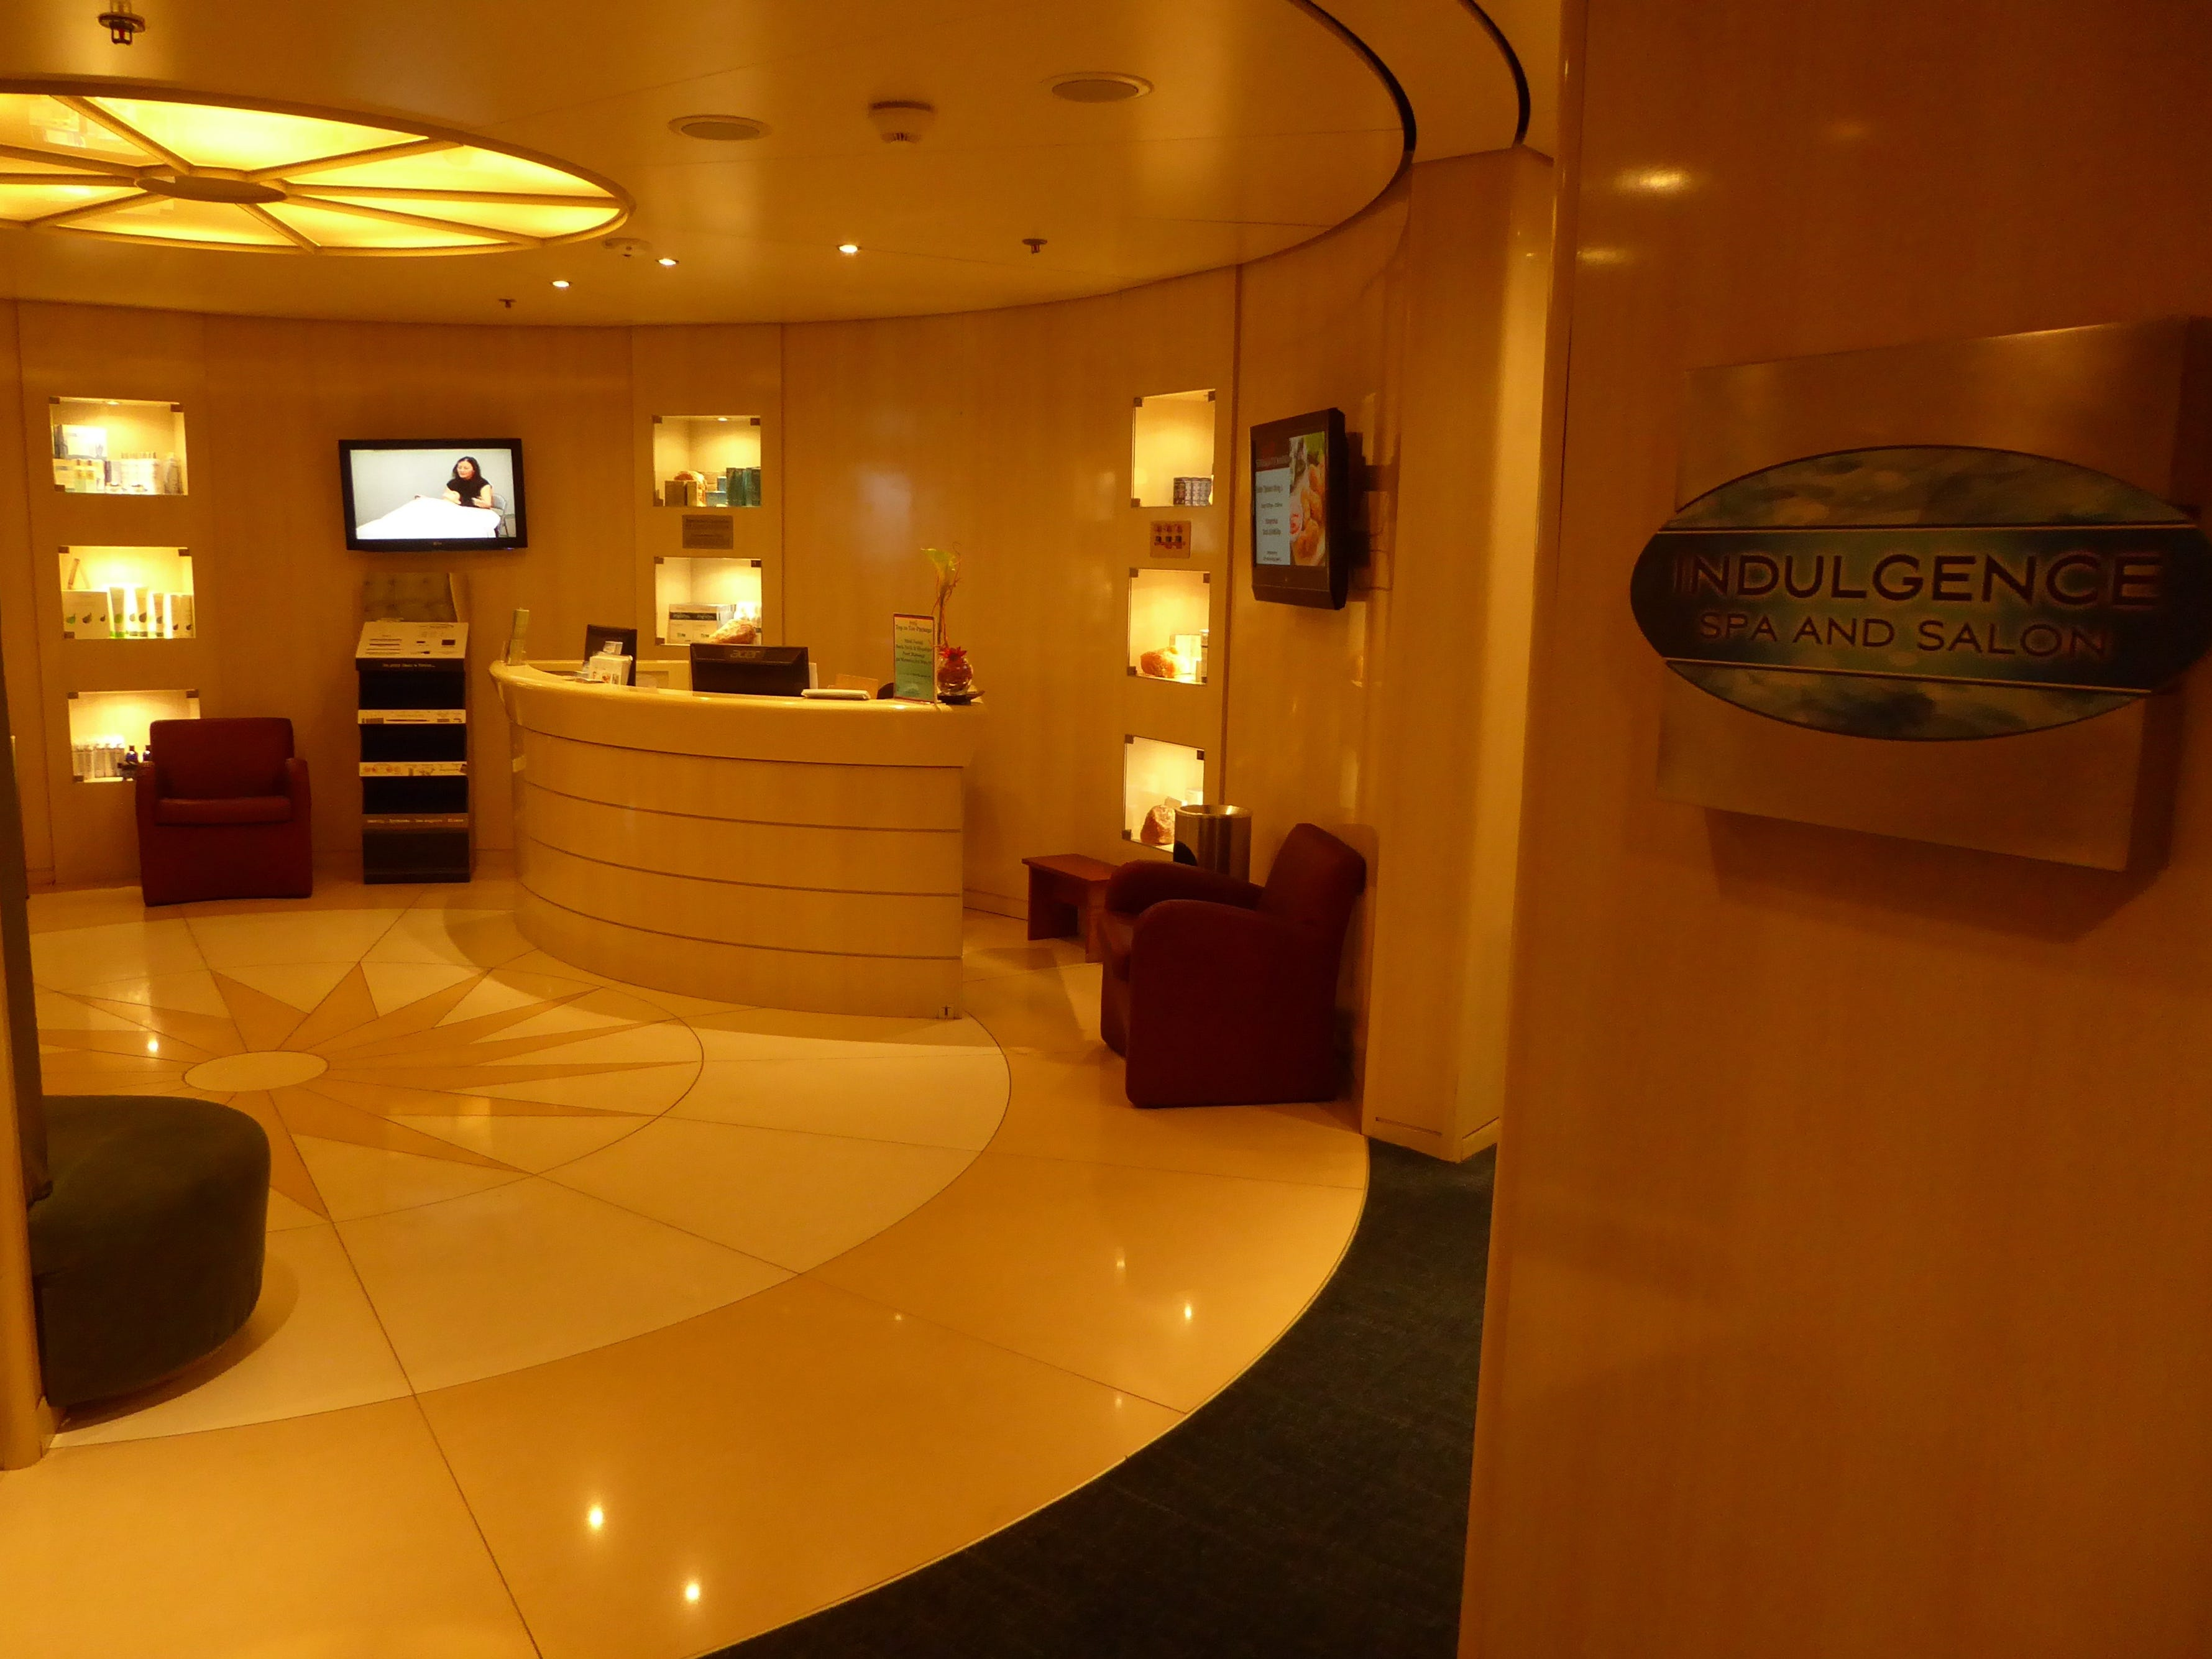 The Indulgence Spa and Salon is located at the aft end of Paradise Deck.